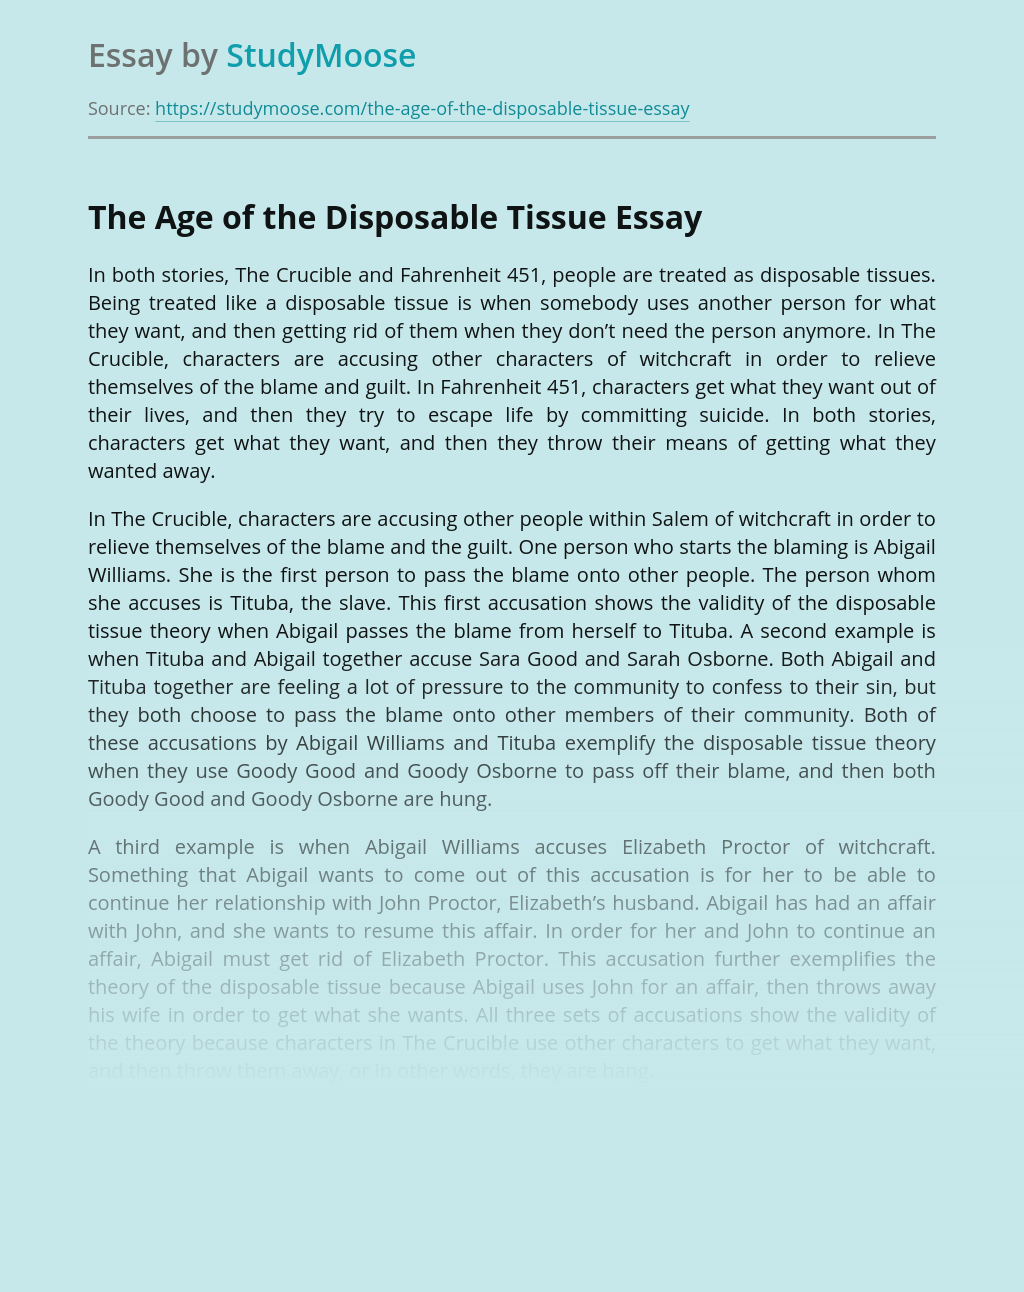 The Age of the Disposable Tissue